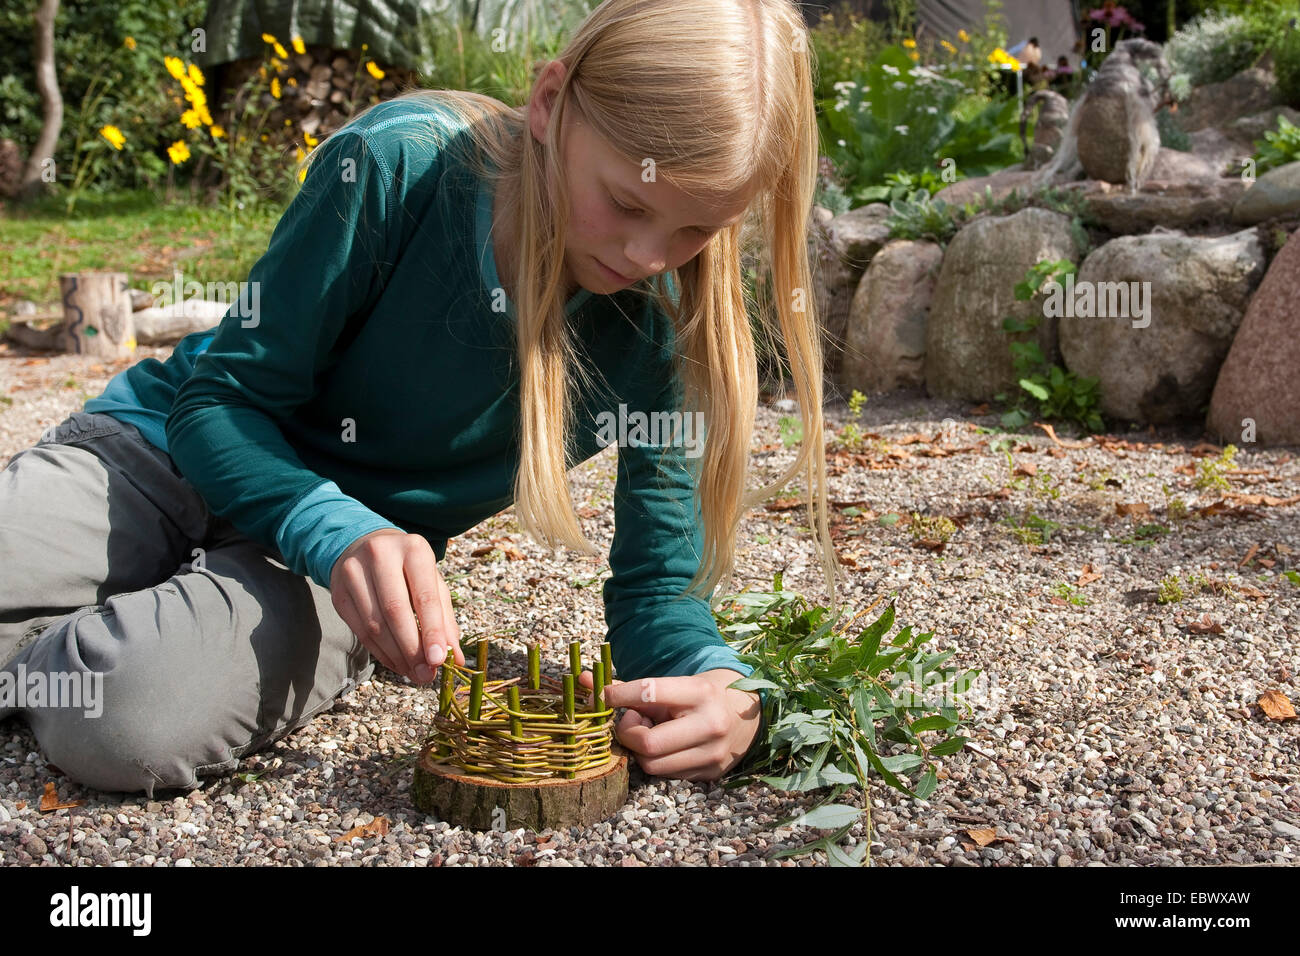 girl building an Easter basket from a tree disc, willow twigs, moss, daisies and coloured eggs; 3. step: weaving - Stock Image